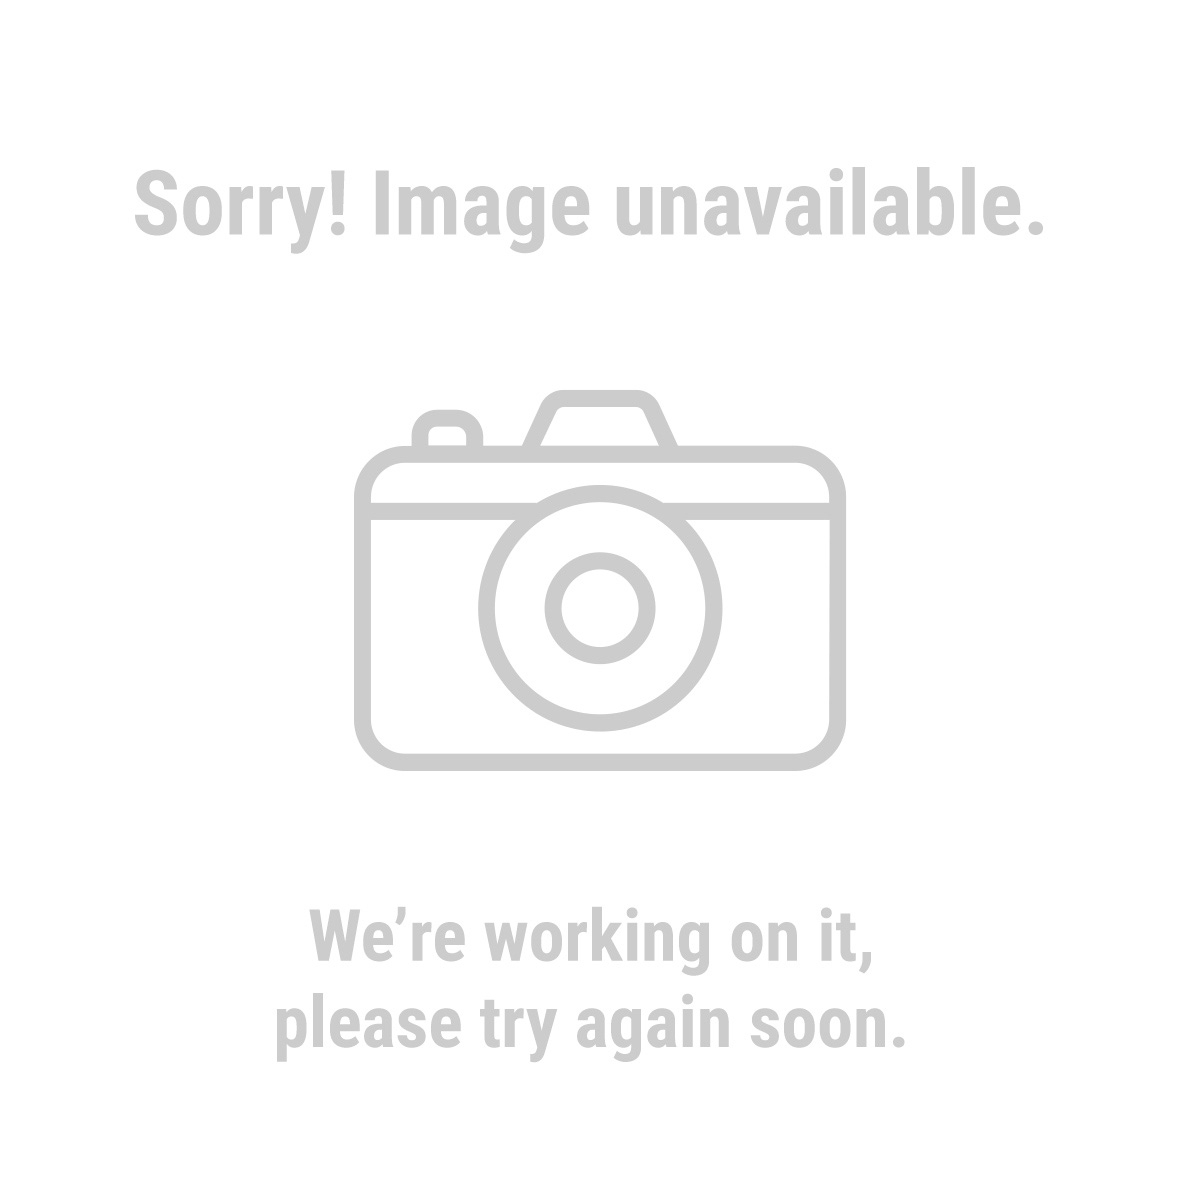 Harbor Freight 3 Ton Daytona Jack Versus Snap On FJ300 Jack - The